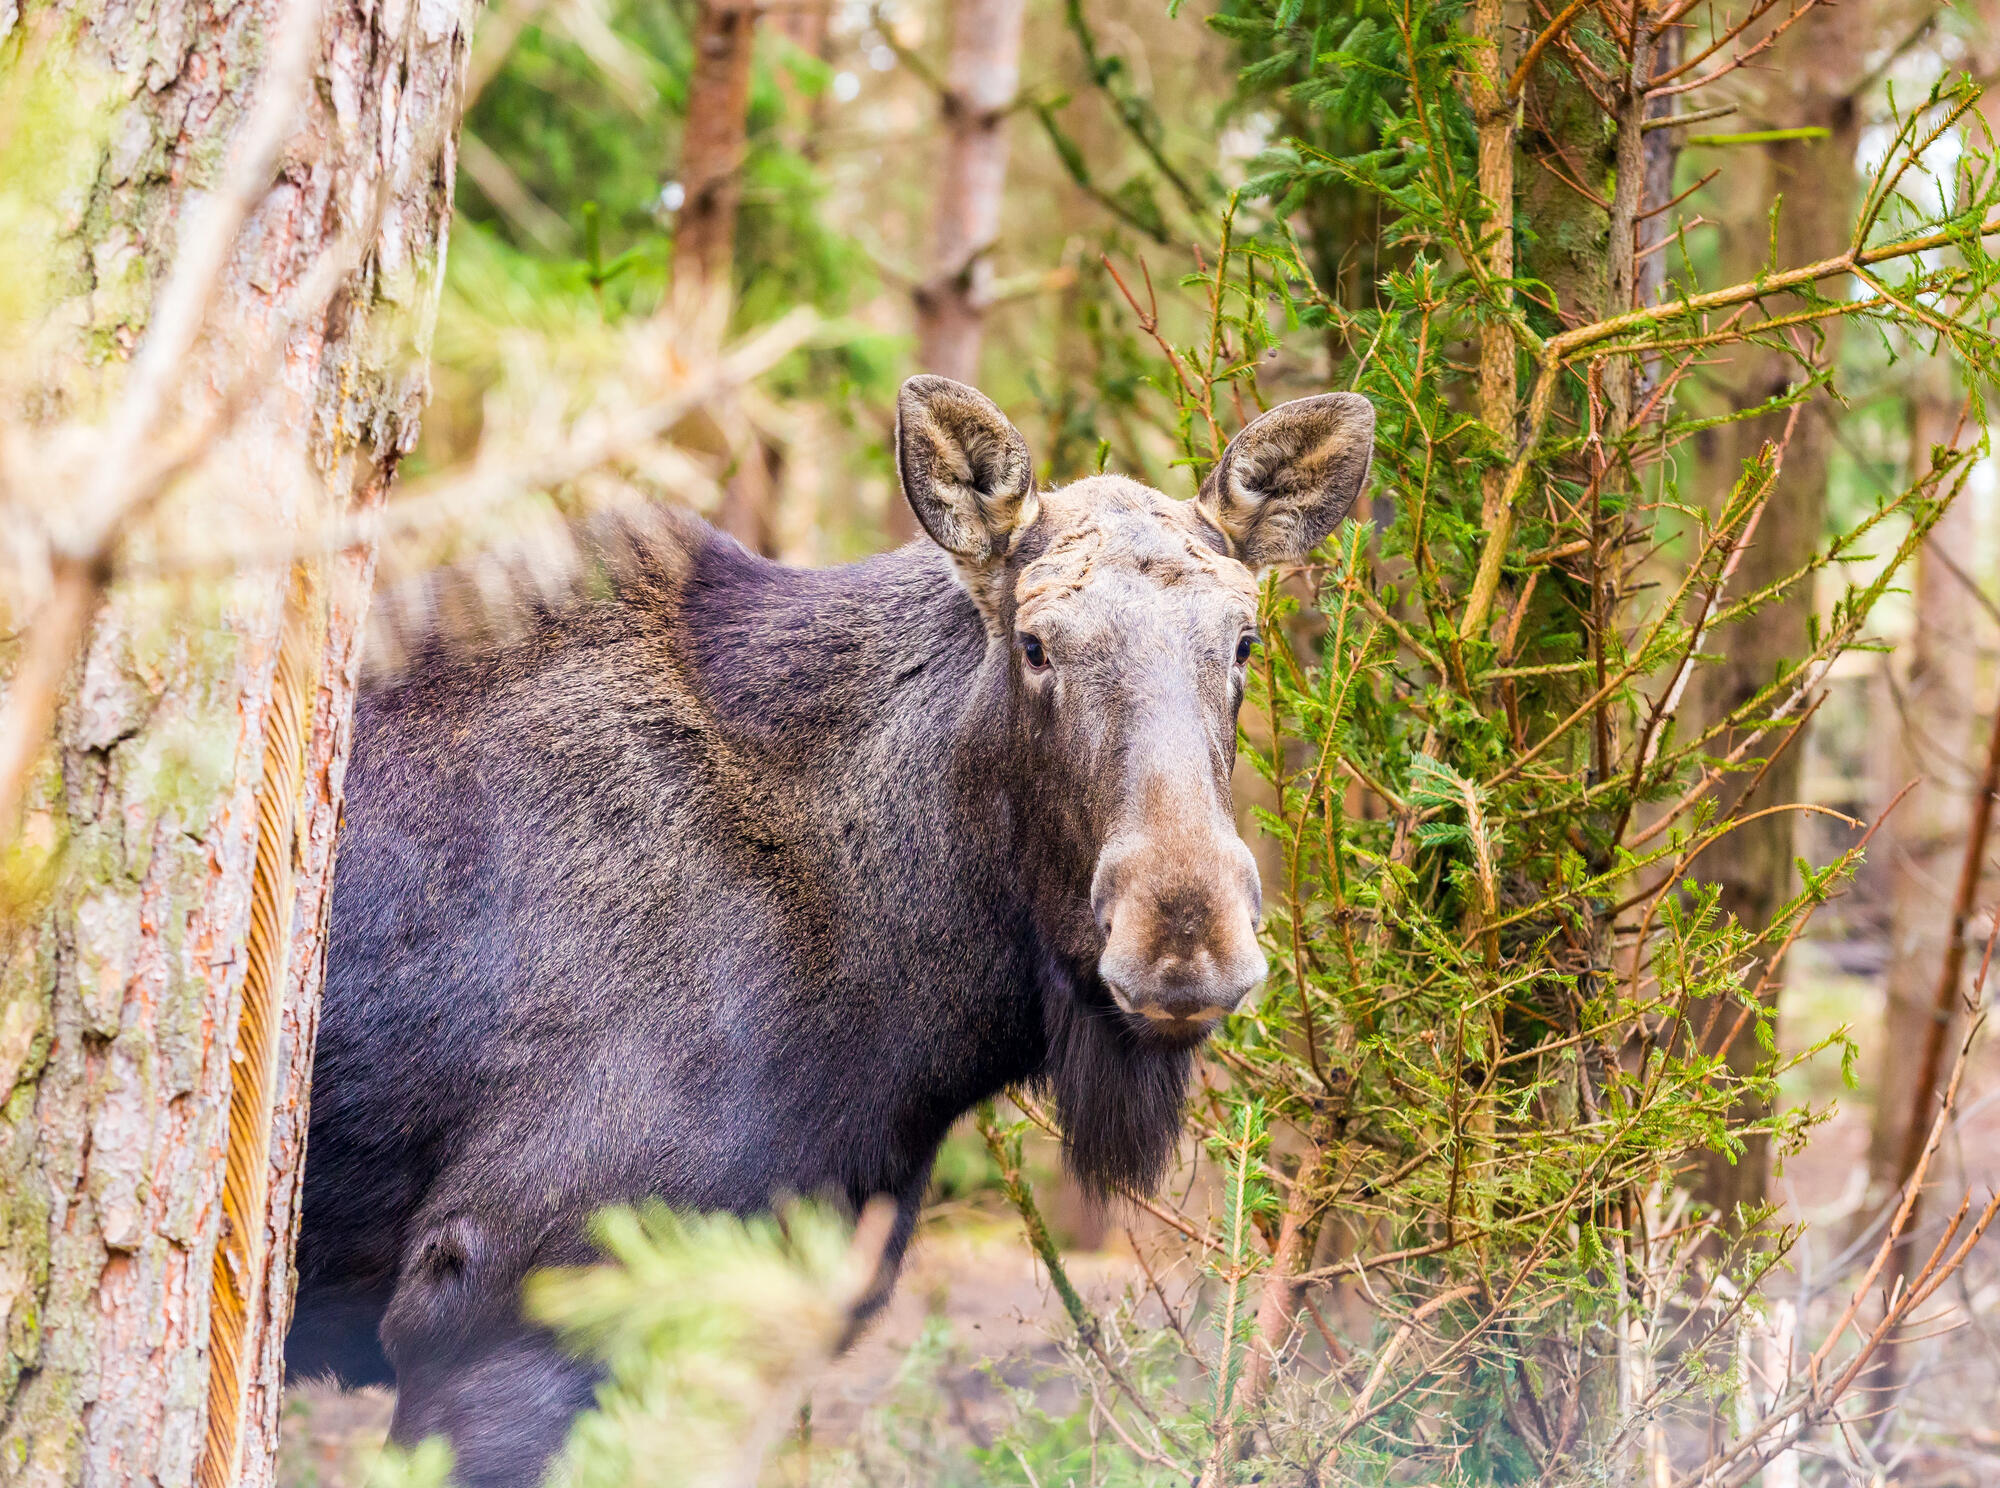 Where do moose live in nature 44